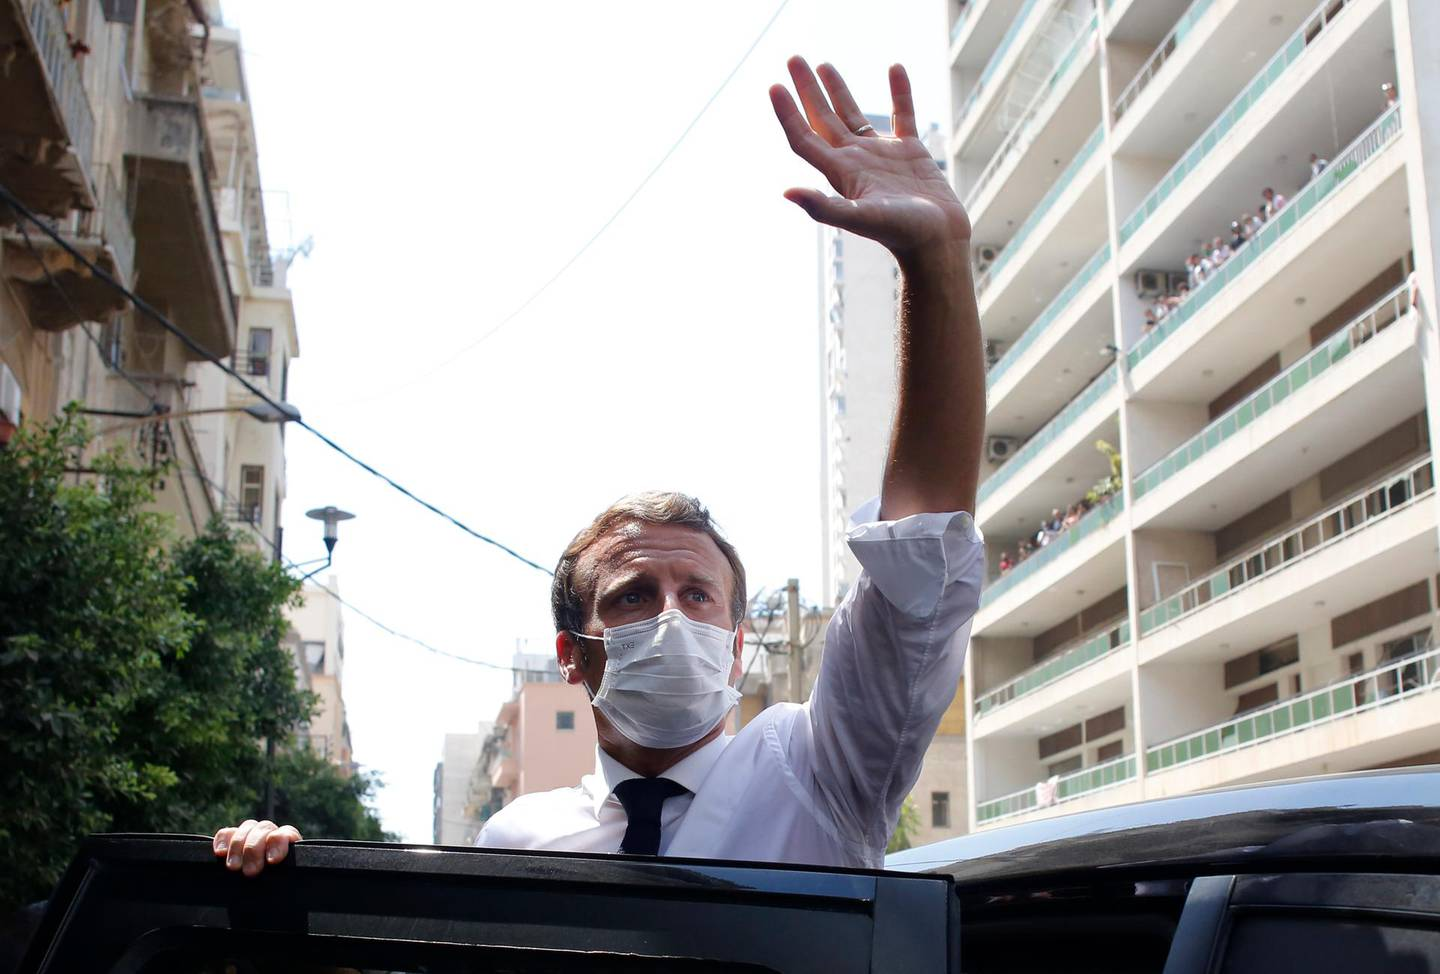 FILE - In this file photo dated Thursday Aug.6, 2020, French President Emmanuel Macron waves as he visits Beirut, Lebanon.  Frenchman Alain Cocq who suffers from a long-term and incurable degenerative illness had planned to show what he expects will be a painful end to his life, but Facebook said Saturday Sept. 5, 2020, it has blocked his live broadcasts and President Macron has said that French law forbade him for granting Cocq's request for a medically-assisted death. (AP Photo/Thibault Camus, FILE)